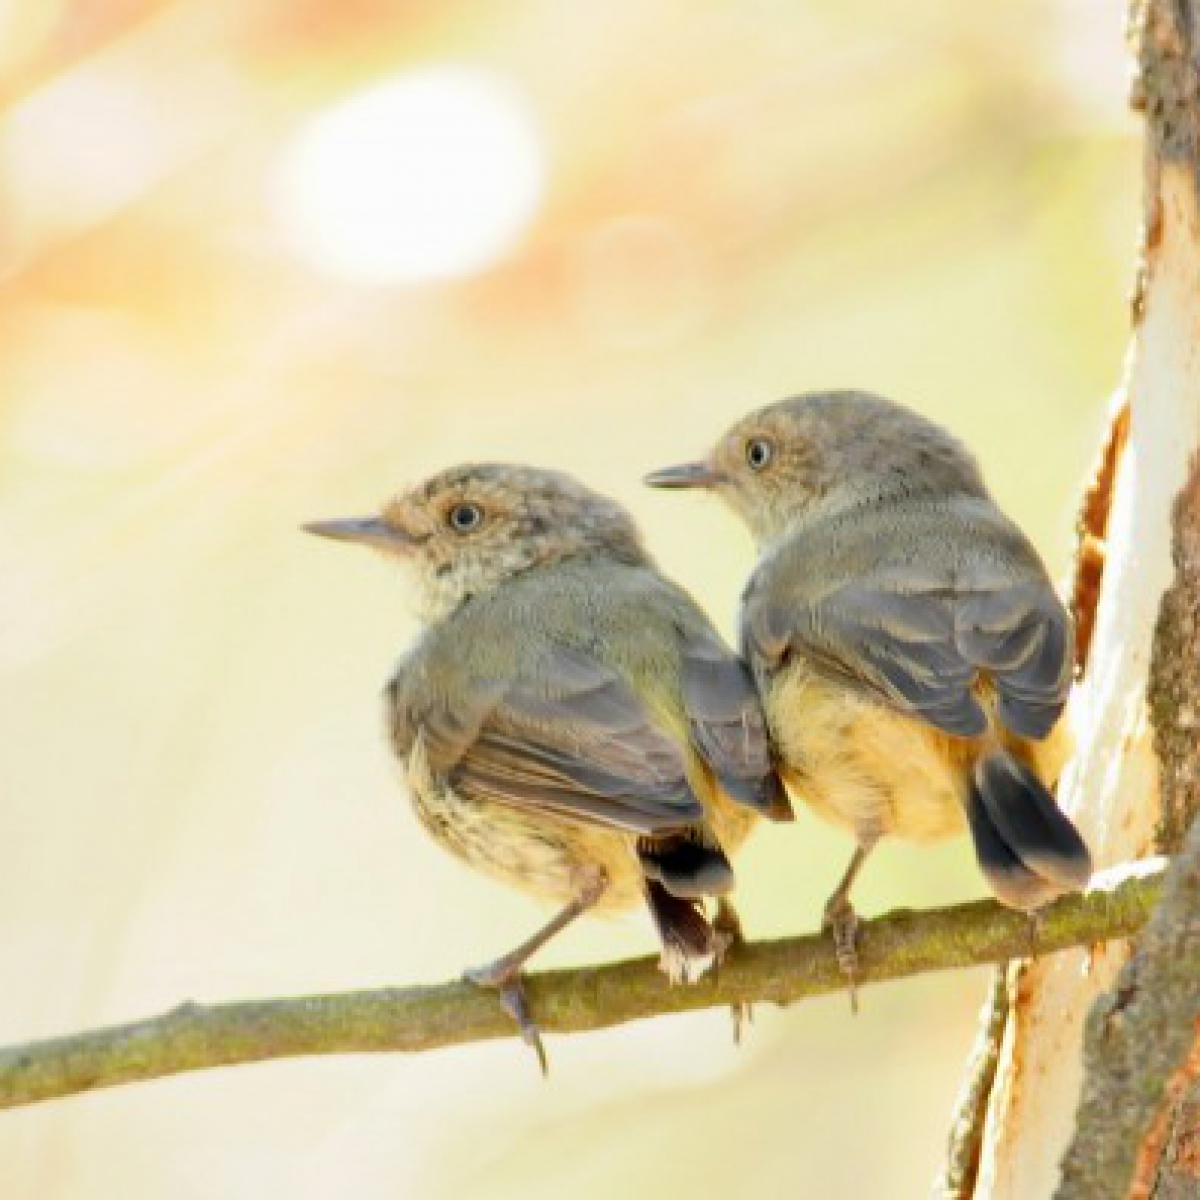 682 Buff-rumped Thornbill